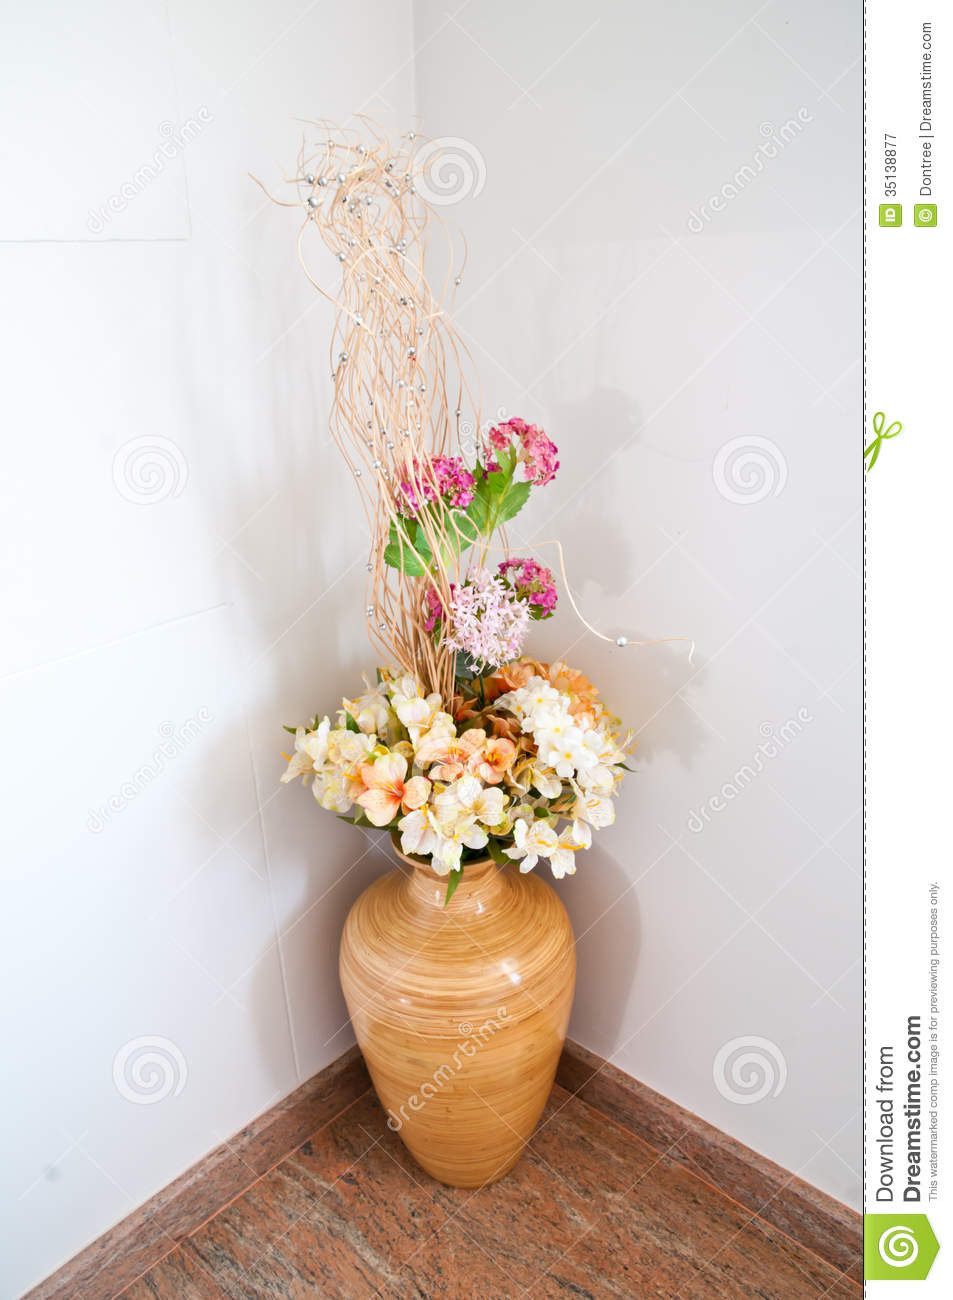 vase funeral home of artificial flowers for vases flowers healthy with full size of furniture impressive artificial flowers in vase 19 colorful 35138877 artificial flowers in gl